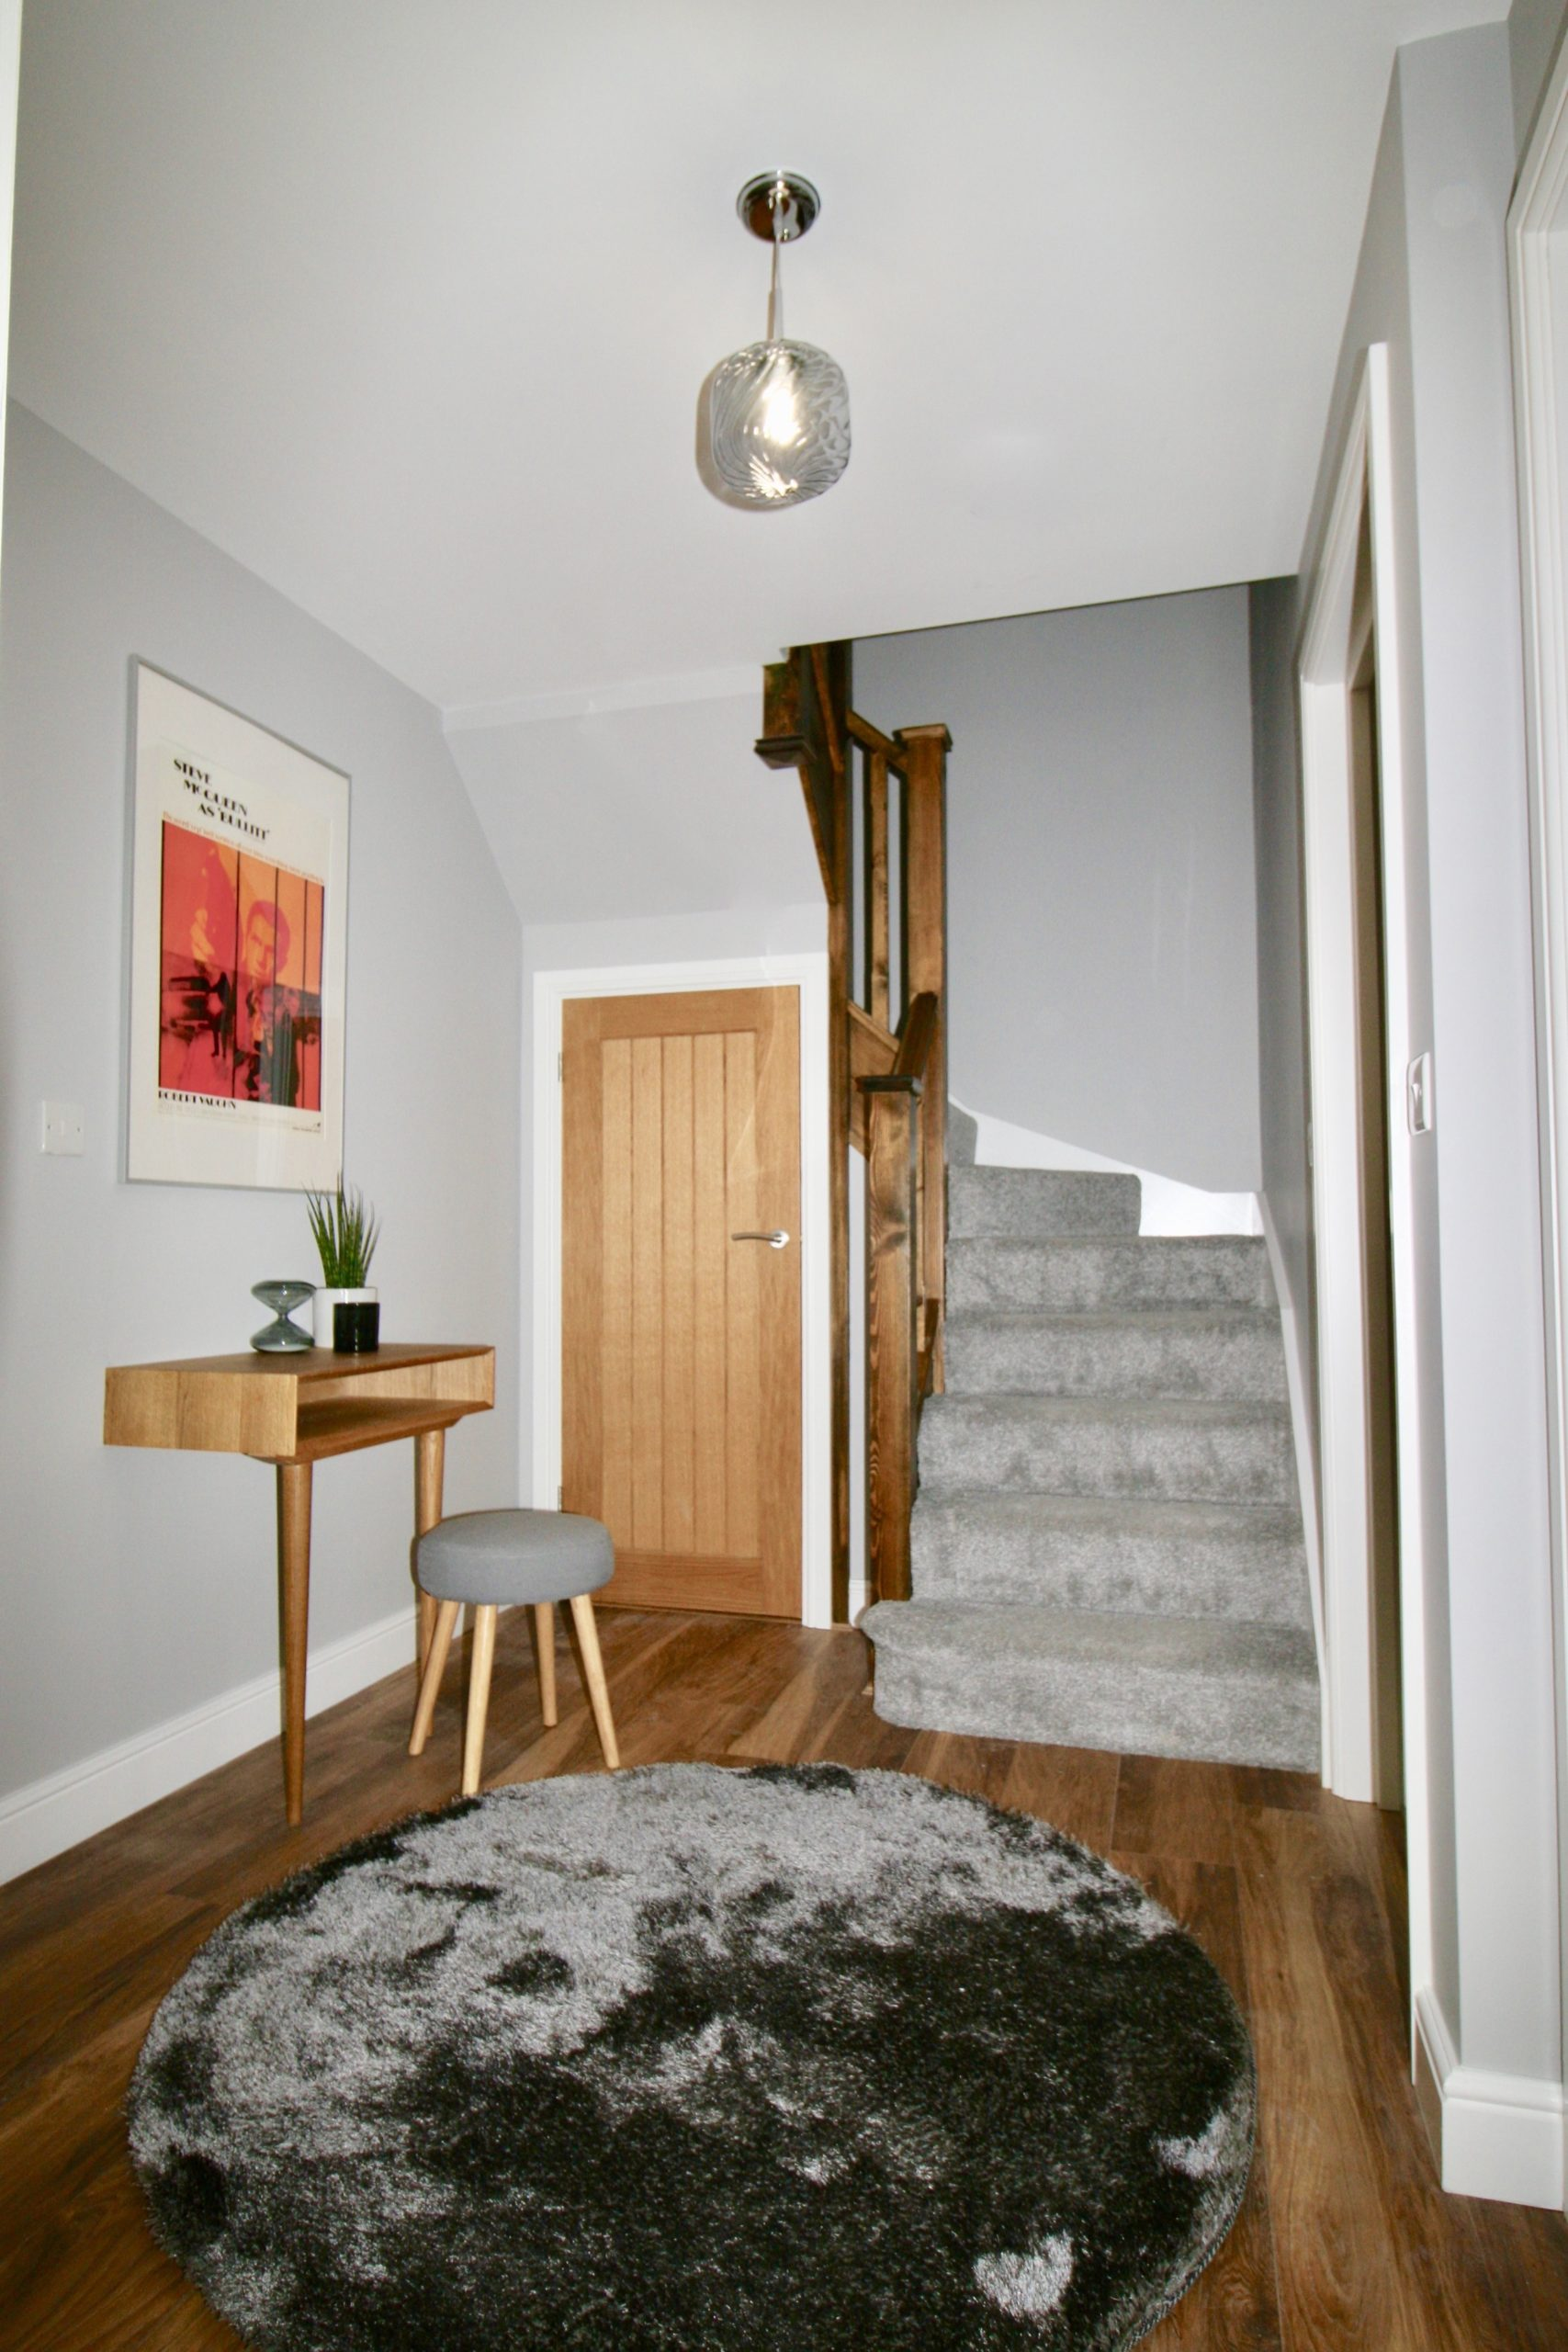 Entrance hall in show home in the John Dalton Apartments on Challoner Street Cockermouth